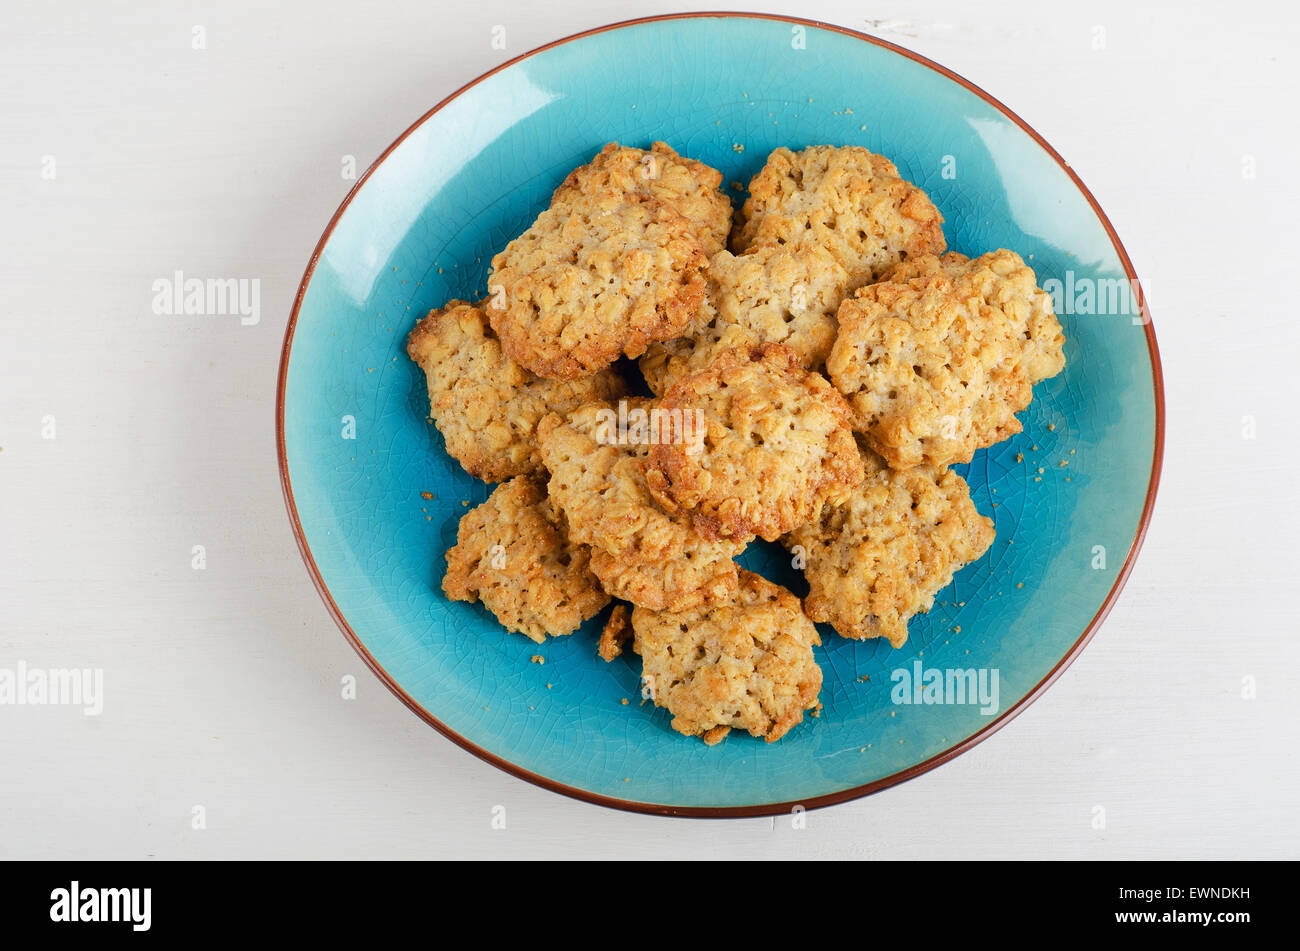 Freshly baked oatmeal cookies in a blue plate. Top view Stock Photo